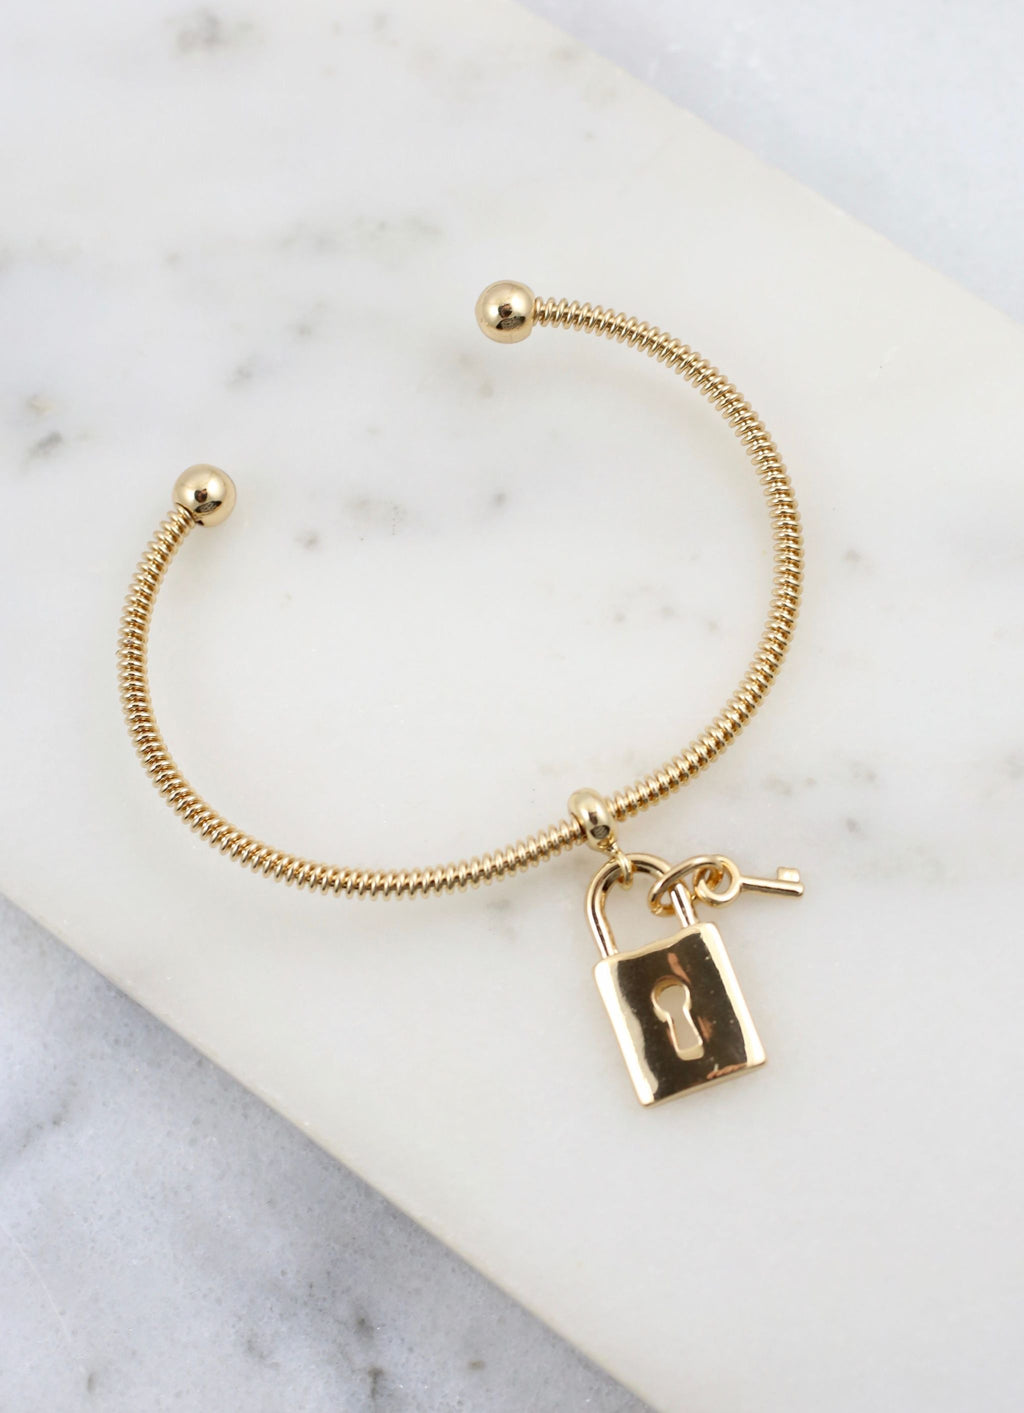 Jonathan Thin Cuff Bracelet With Lock Charm Gold - Caroline Hill